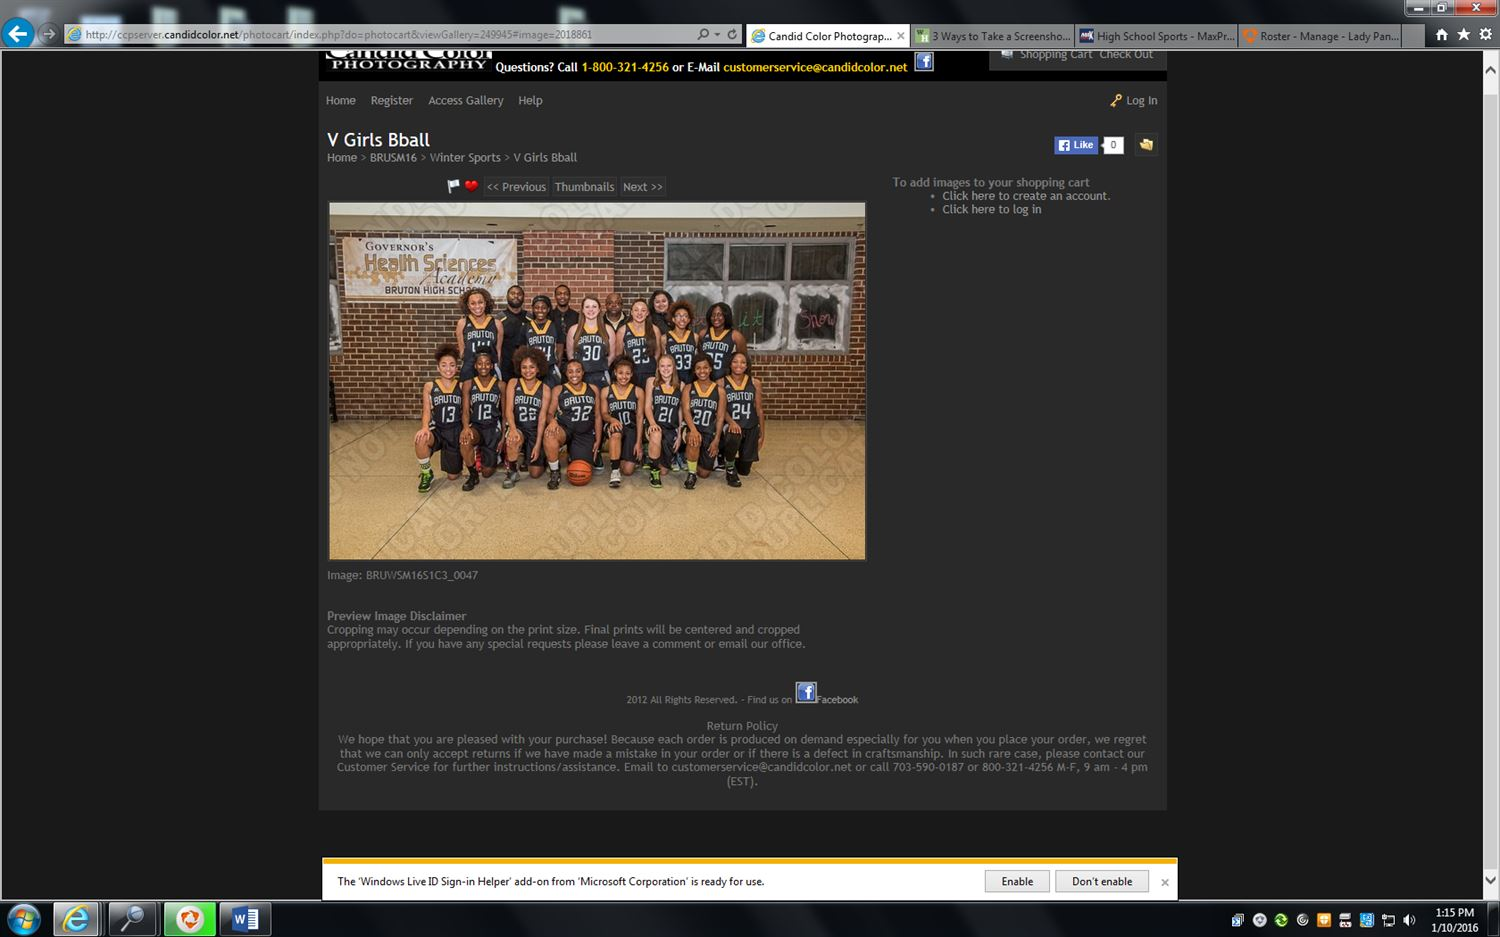 Bruton High School - Lady Panthers